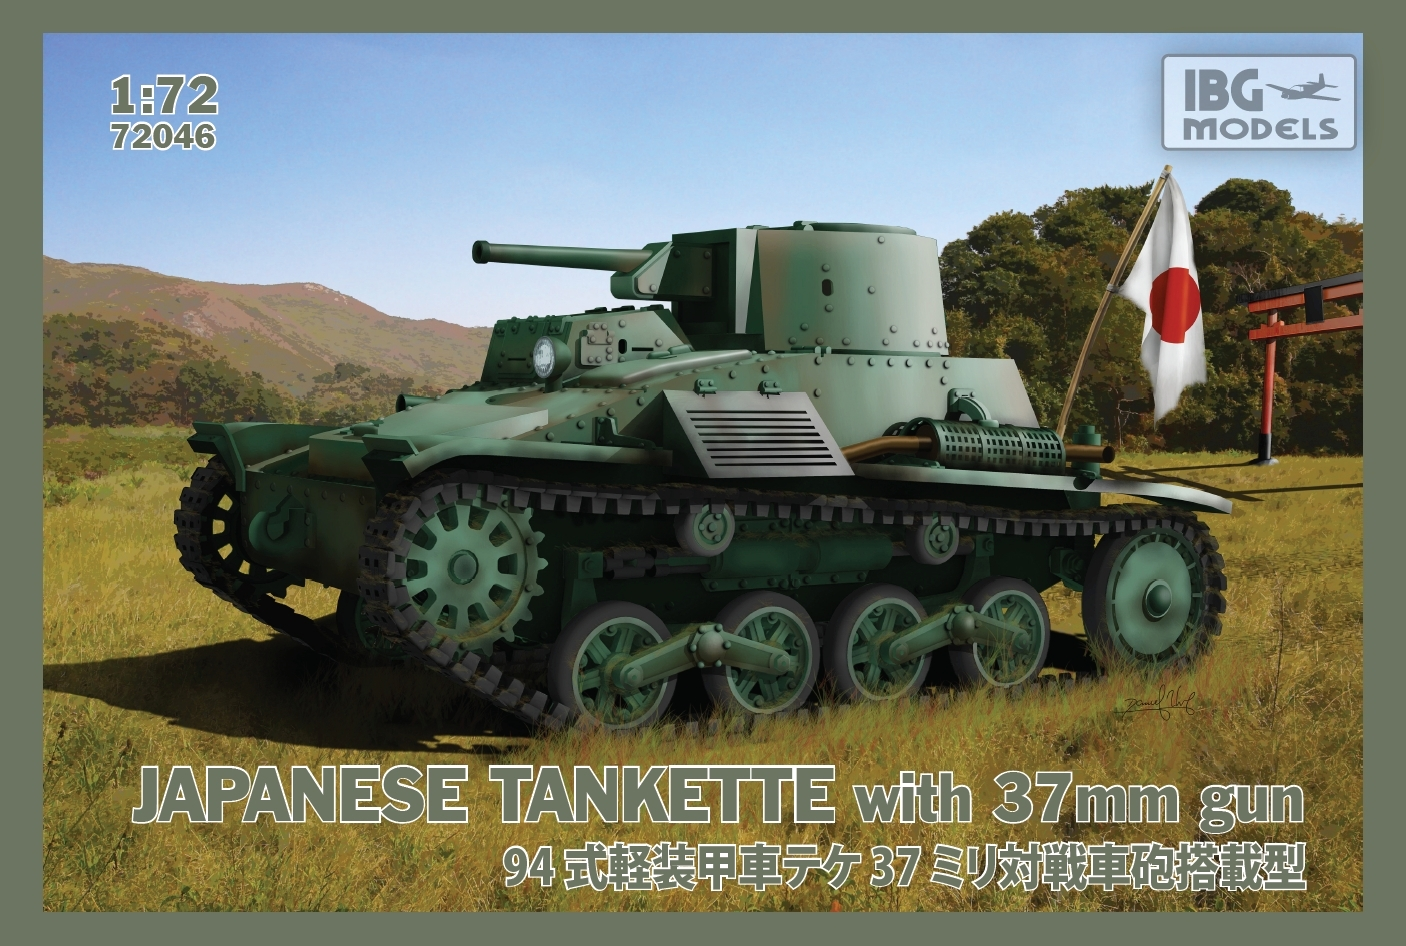 TYPE 94 Japanese Tankette, with 37mm gun